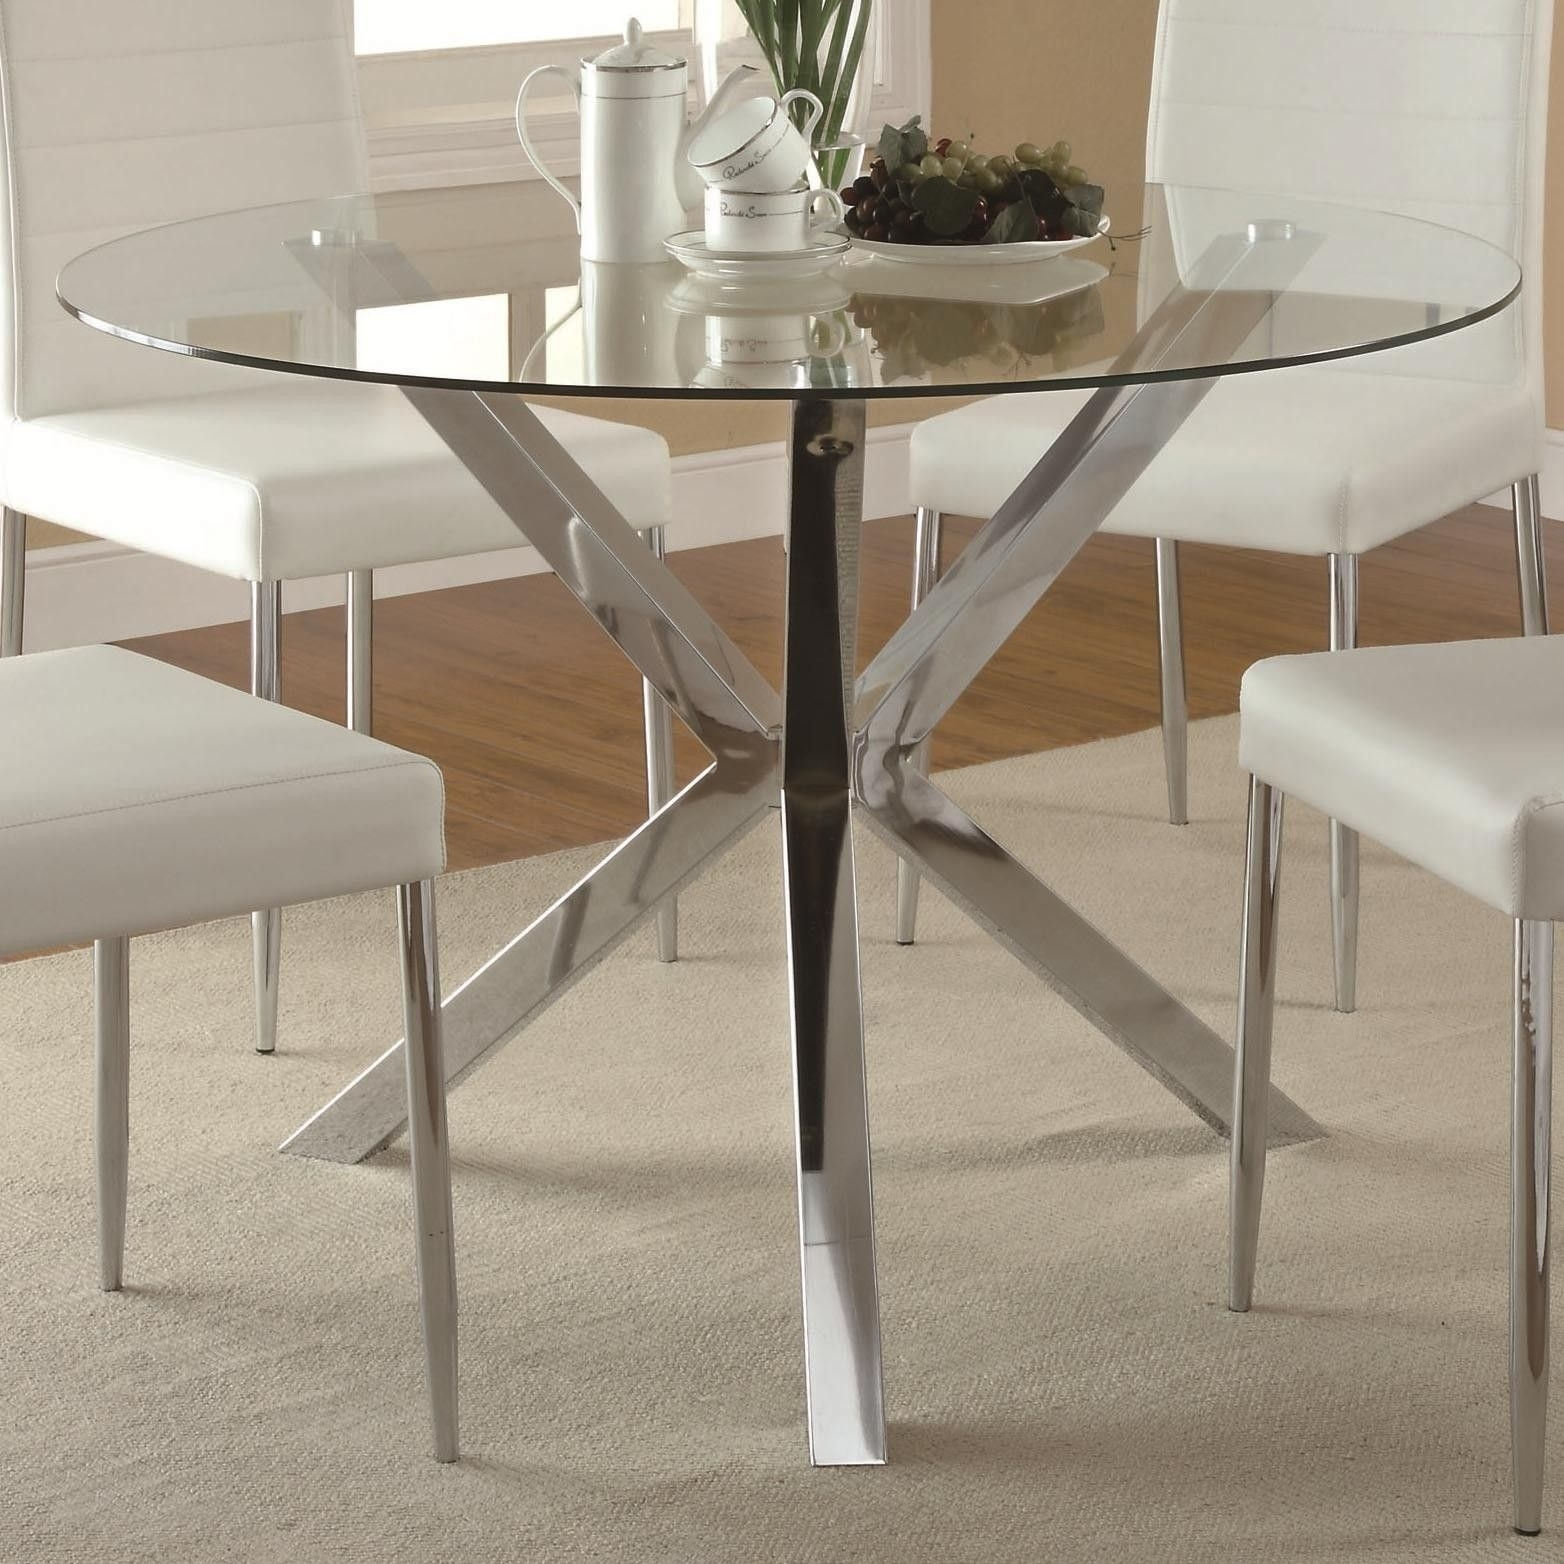 Vance Glass Top Dining Table With Unique Chrome Base 120760 Qlx1 Pertaining To Best And Newest Lassen 7 Piece Extension Rectangle Dining Sets (Image 19 of 20)